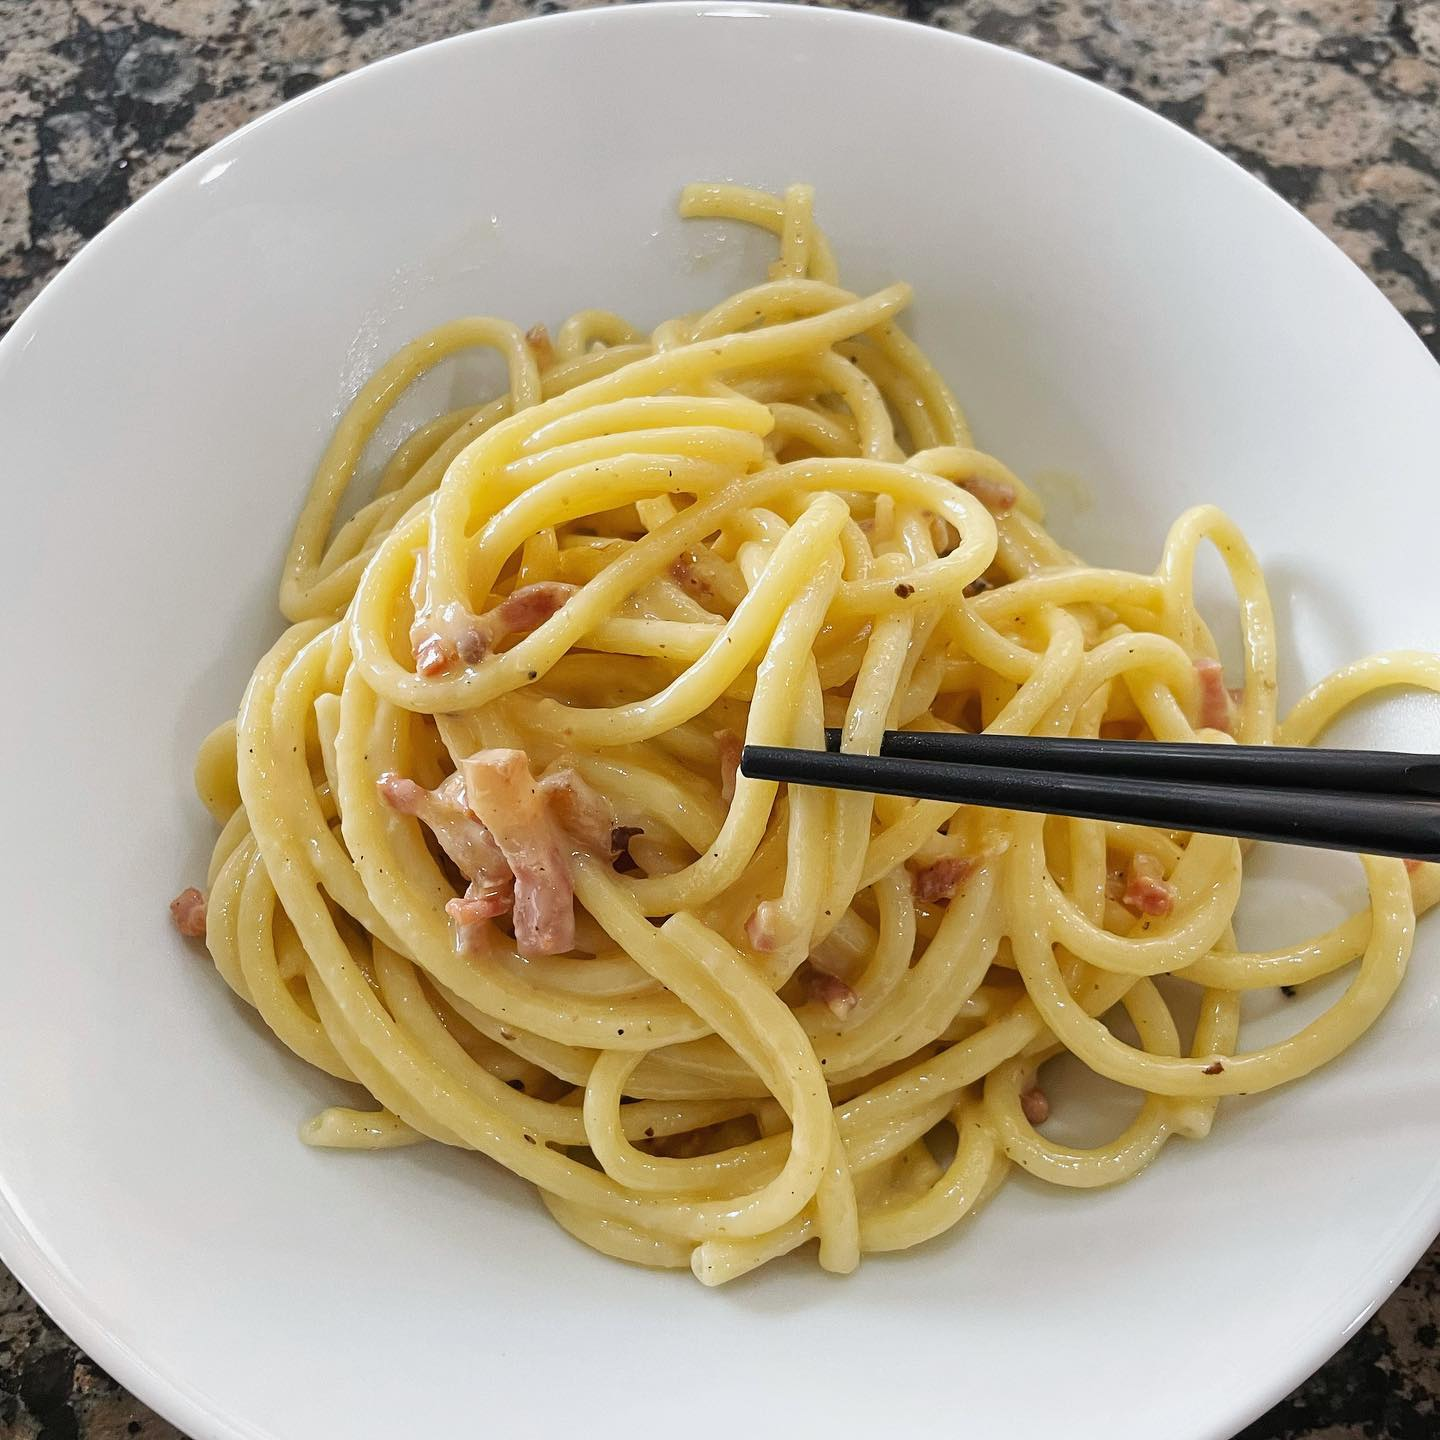 If I eat my carbonara with chopsticks will I be banned from Italy for life?